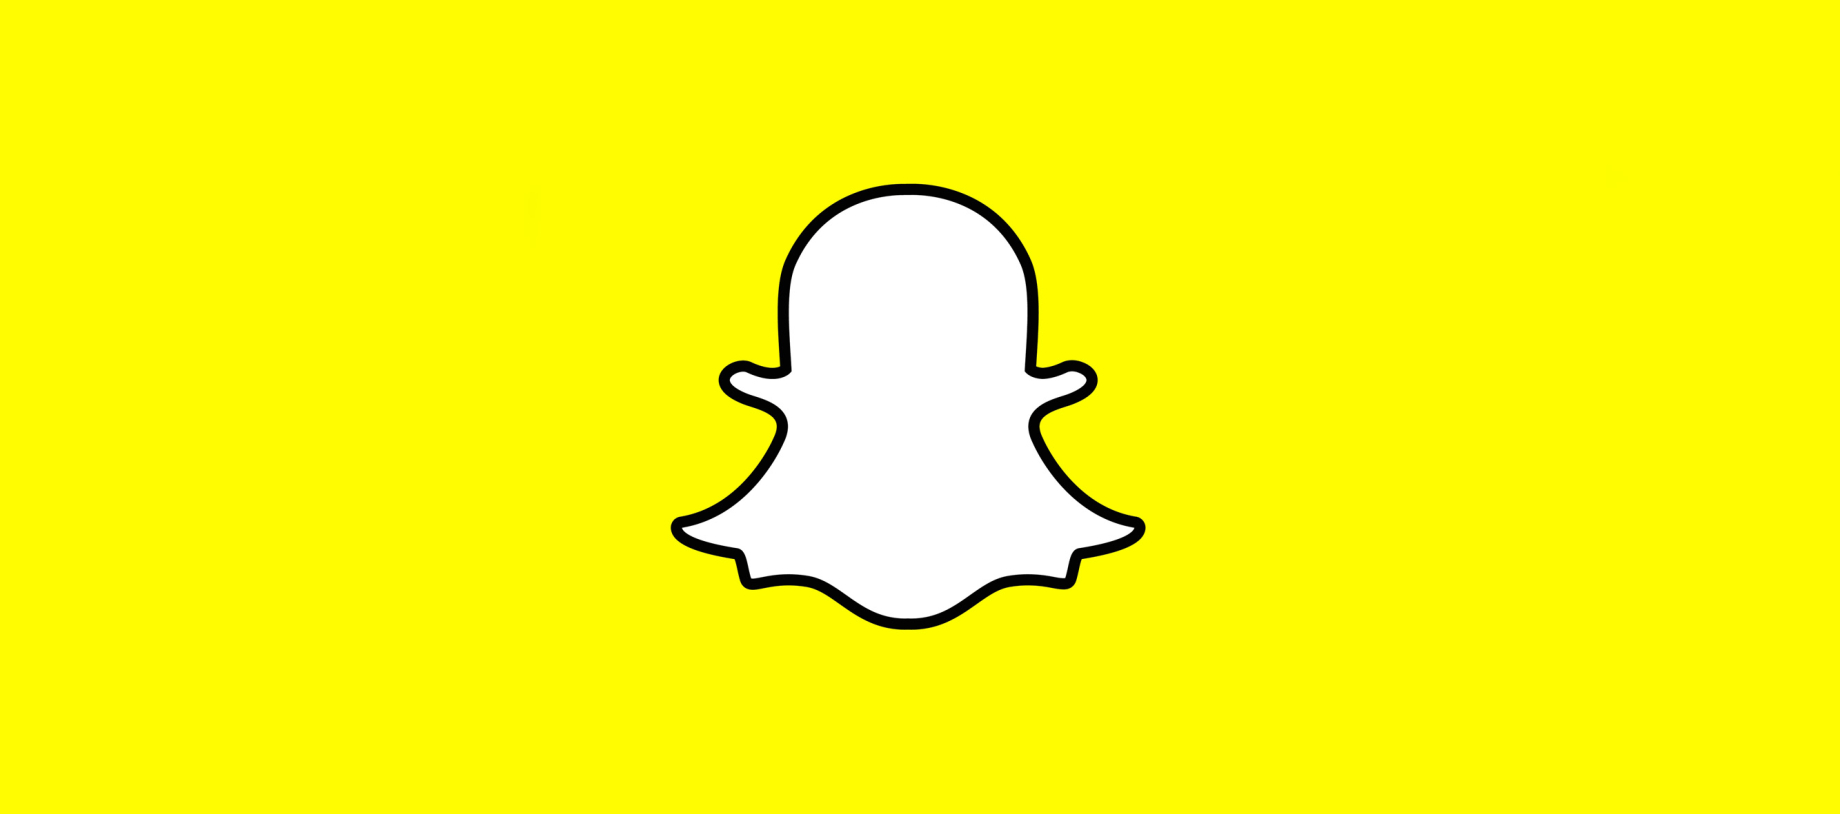 Snapchat finally fixed this really annoying problem